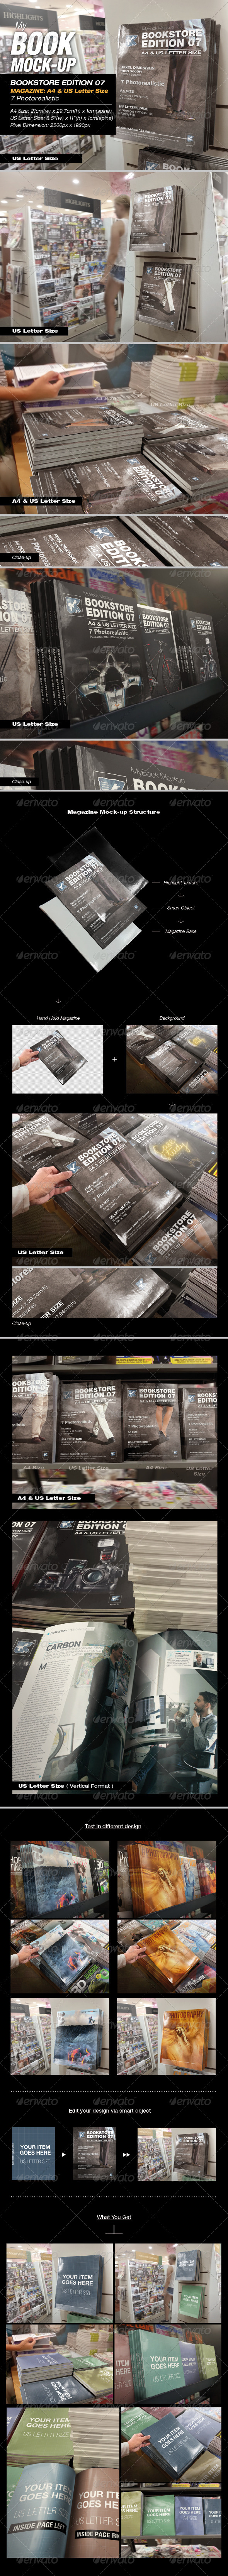 GraphicRiver MyBook Mock-up Bookstore Edition 07 8257623